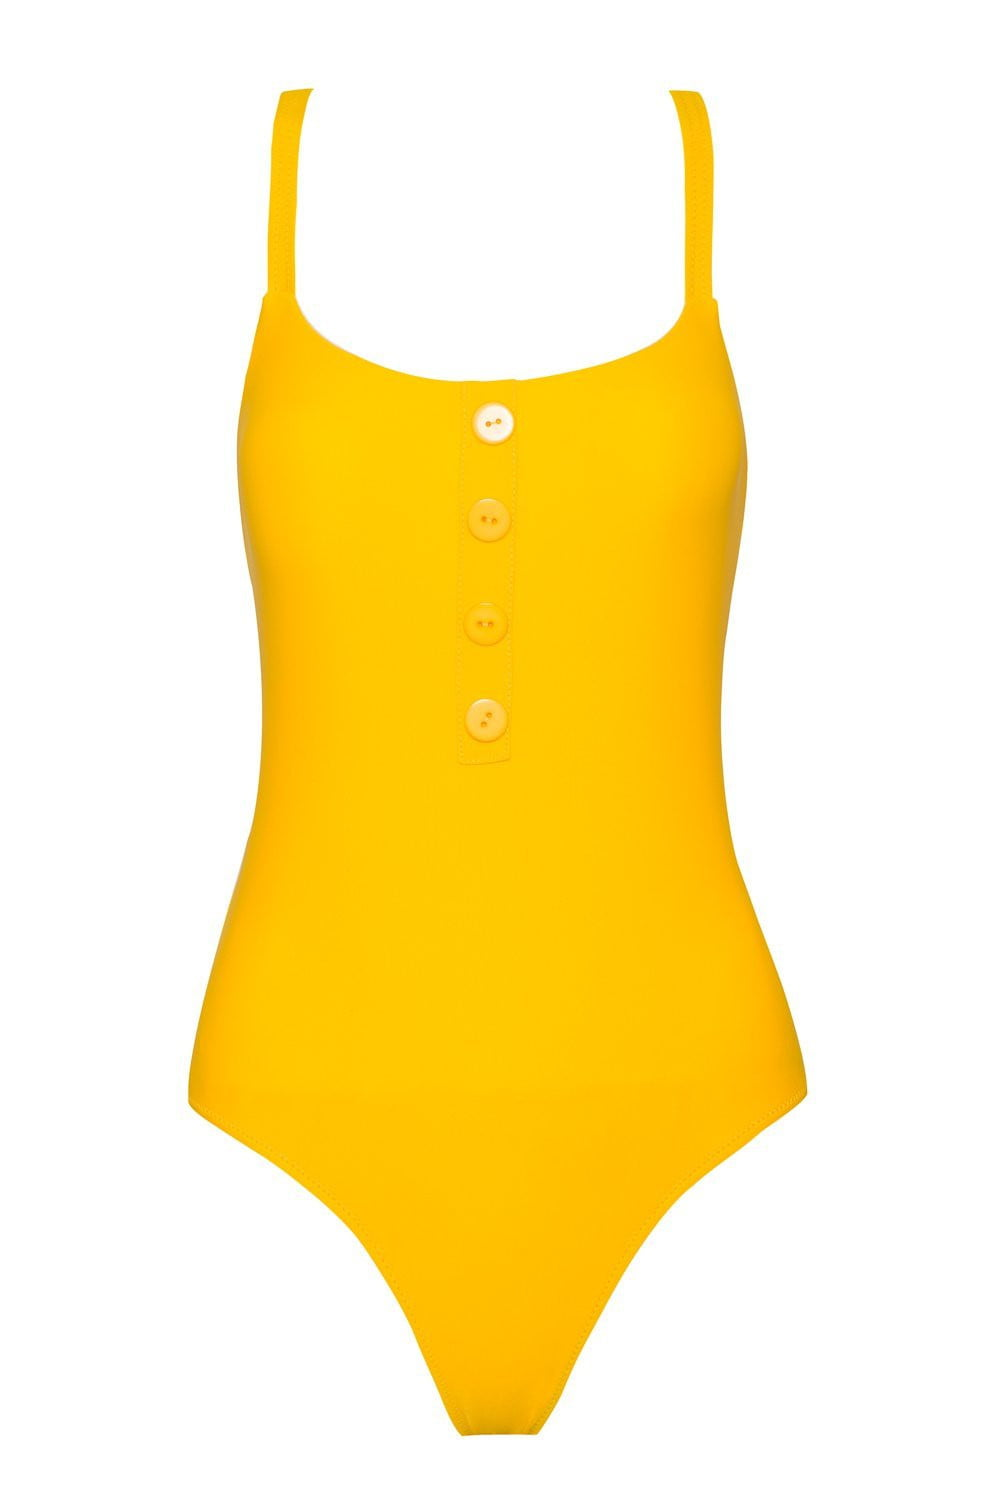 MUSTARD YELLOW ONE PIECE SWIMSUIT